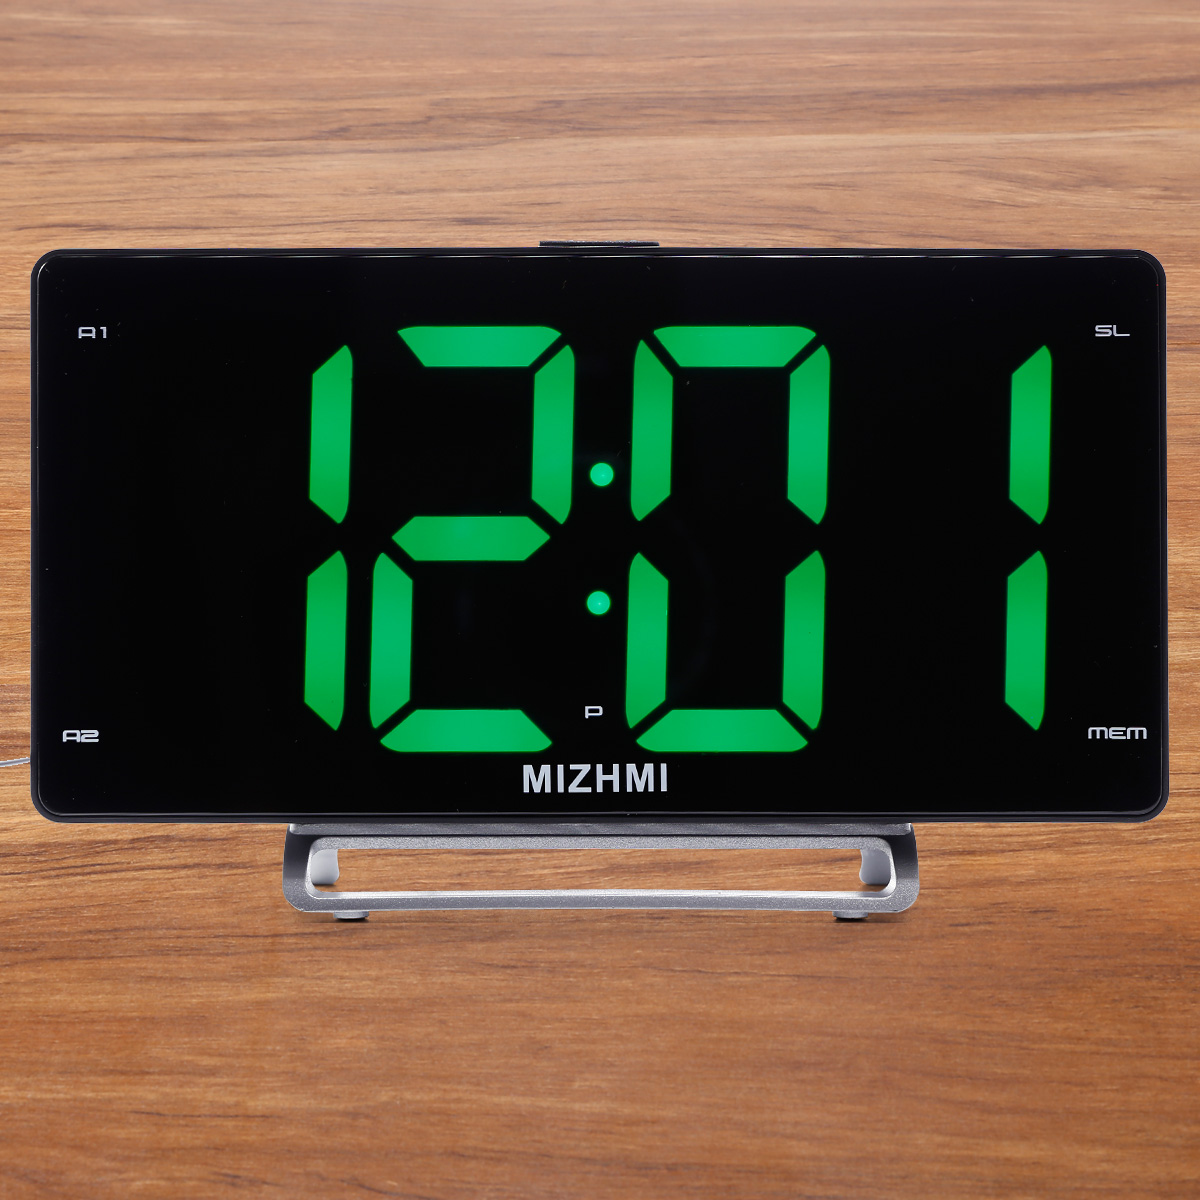 Details About Electronic Table Digital Alarm Clock Led Display Snooze Home Bedroom Decor